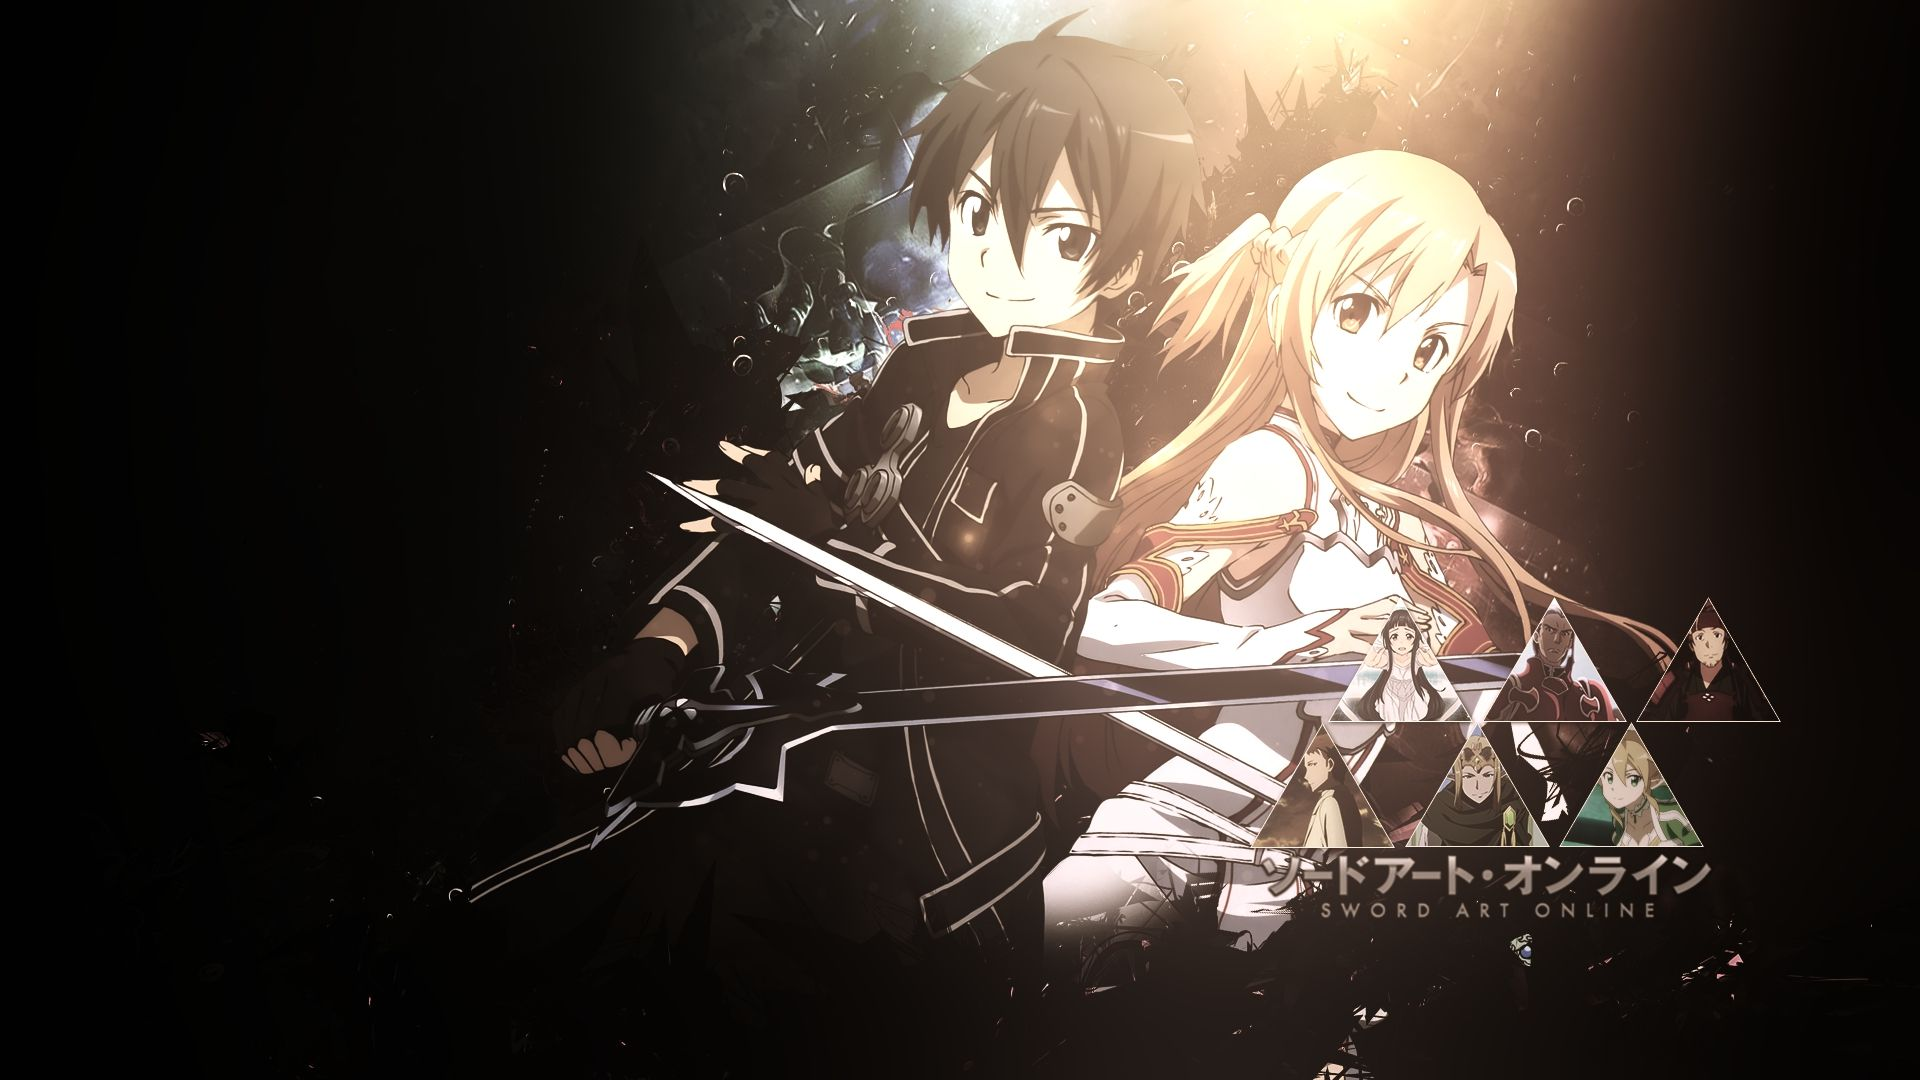 Sword Art Online HD Wallpapers Backgrounds Wallpaper Аниме